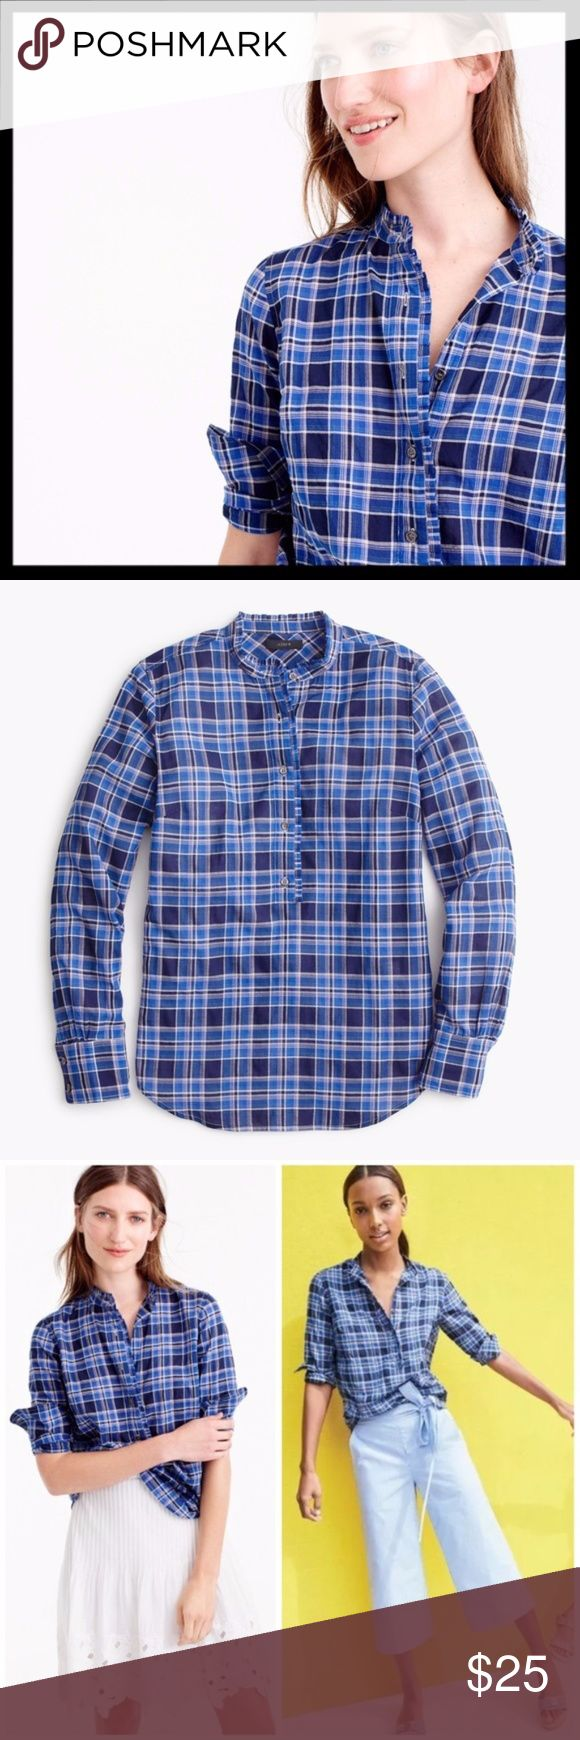 j. crew // ocean plaid blue ruffled popover shirt This plaid button up pullover is back from jcrews archives. Crafted in cotton that's a lil bit gauzy and intentionally rumpled, meaning it's cool and easy to wear. Lightweight and easy to layer. Ruffled trim. Gently worn, in great preowned condition. J. Crew Tops Button Down Shirts